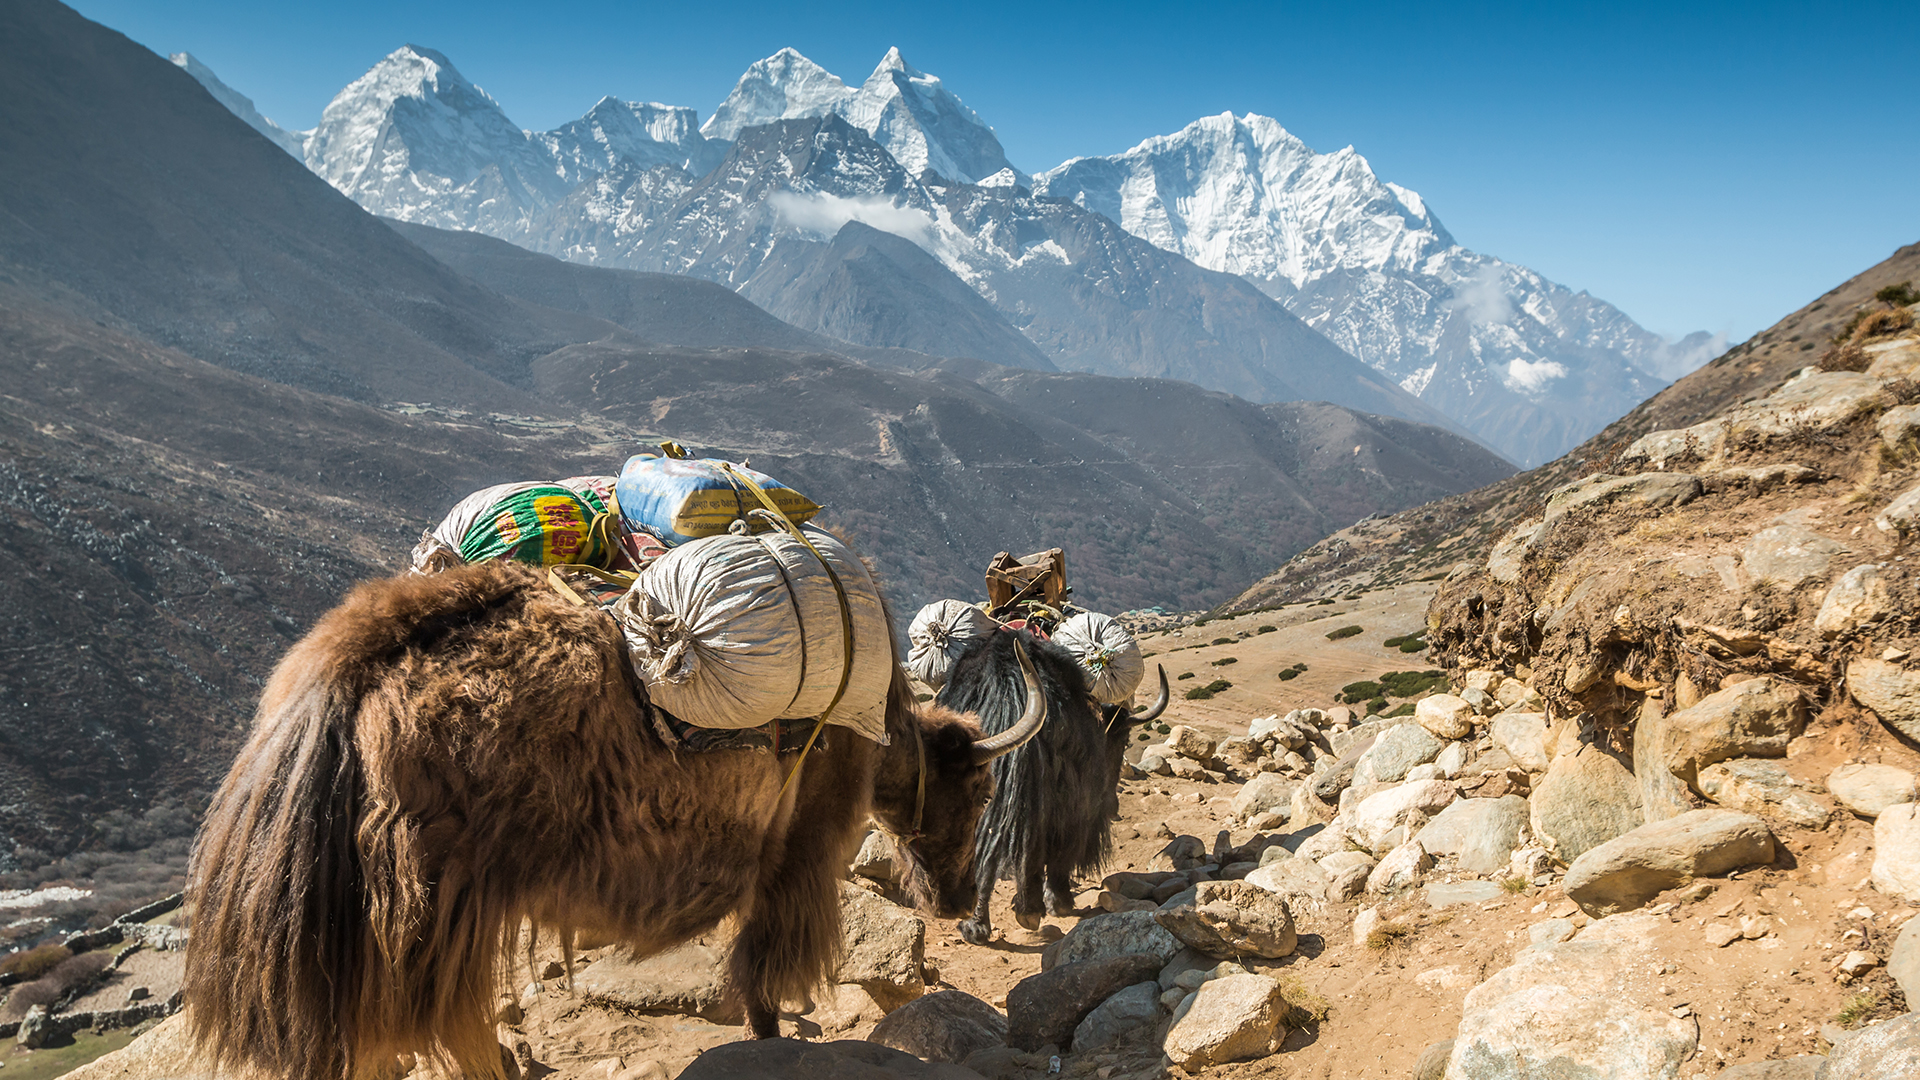 Yak And Yeti Nepal Kathmandu ⋆ Hotel ⋆ Greaves India